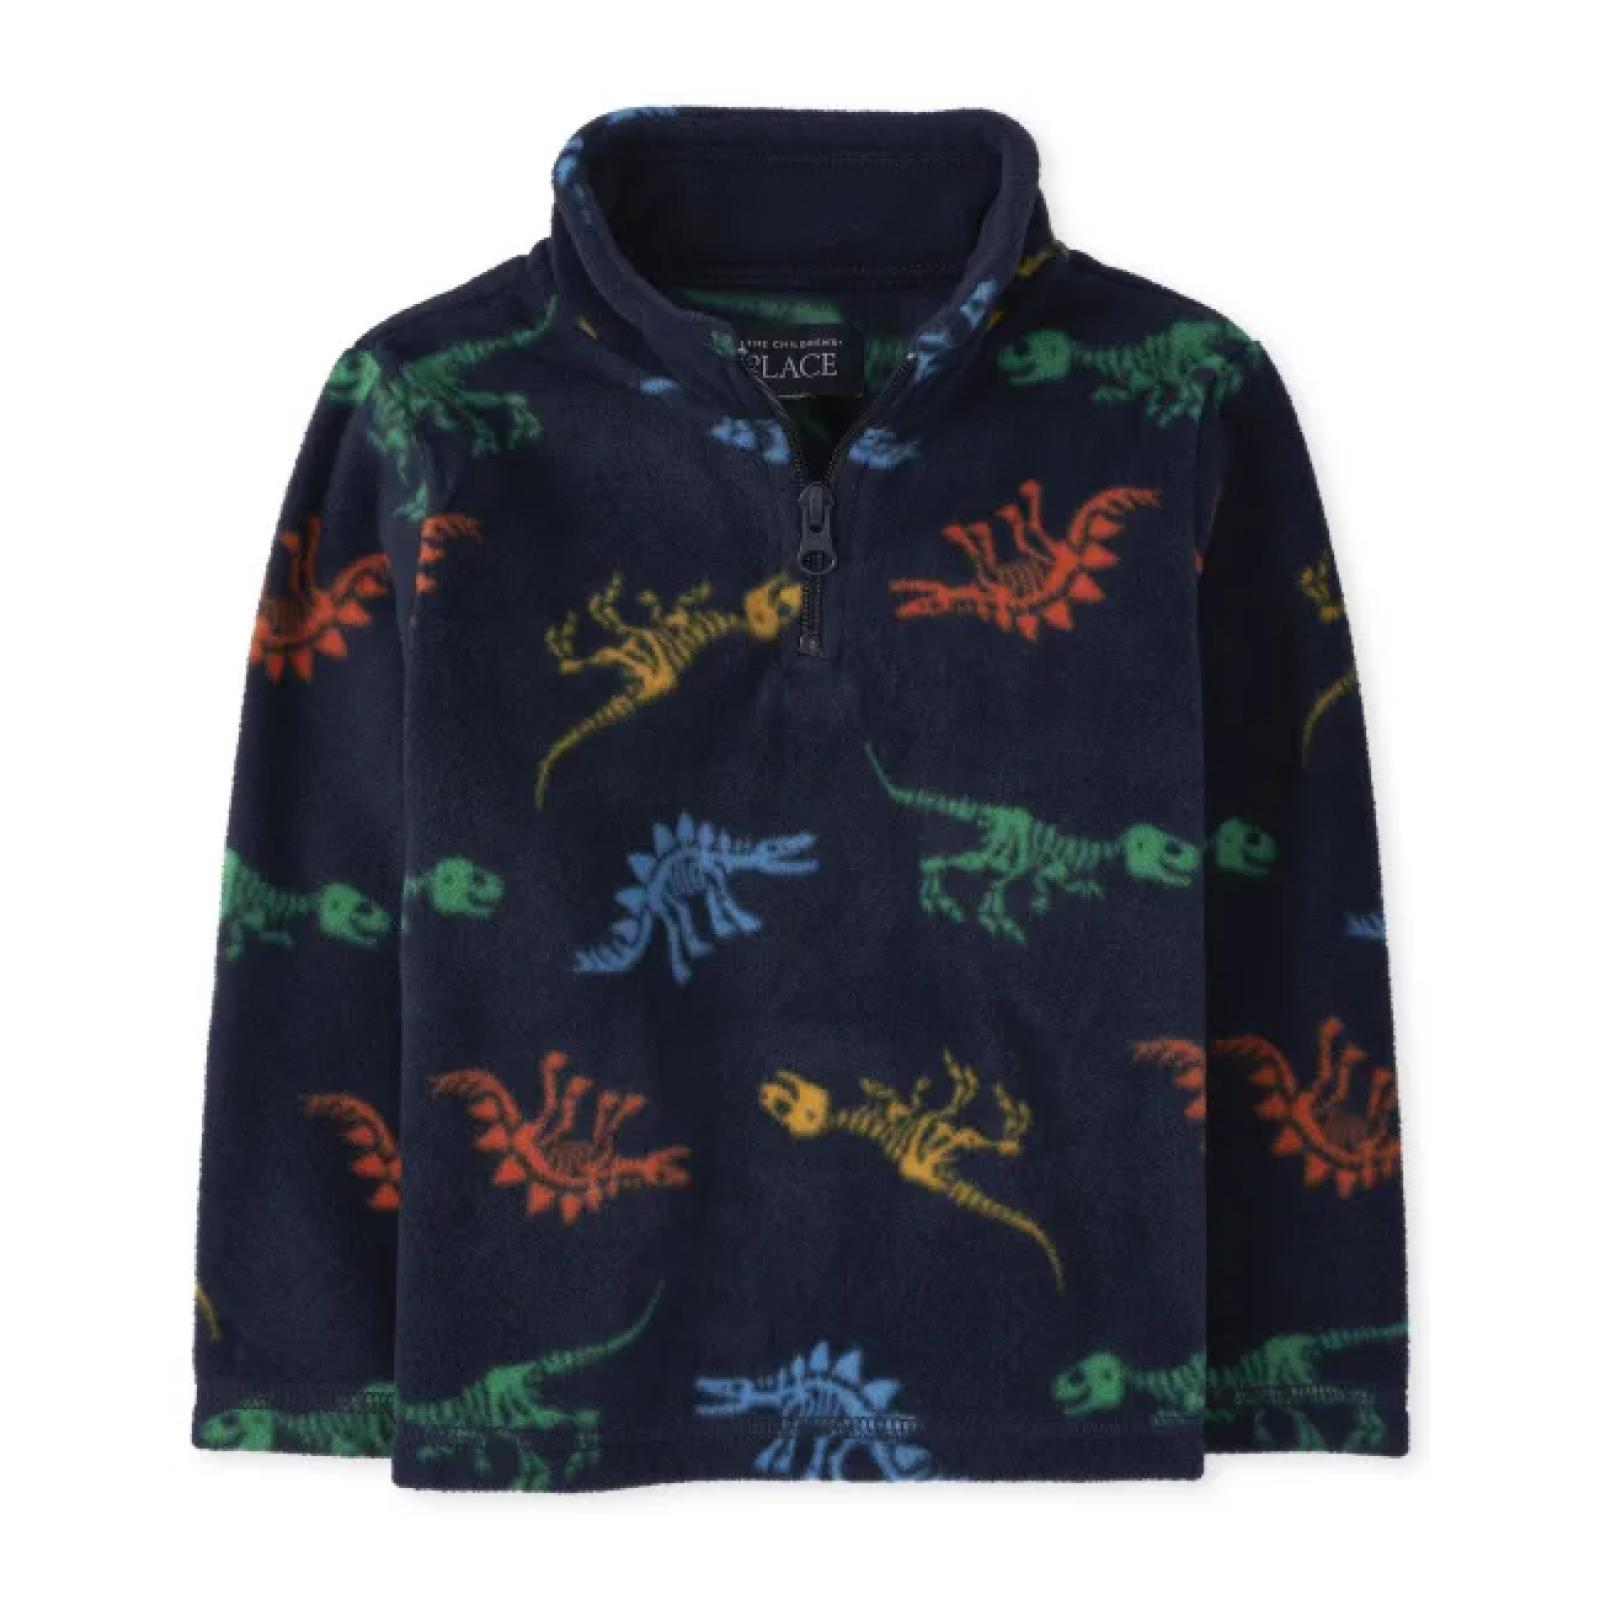 Sweater fleece marinho dinossauro